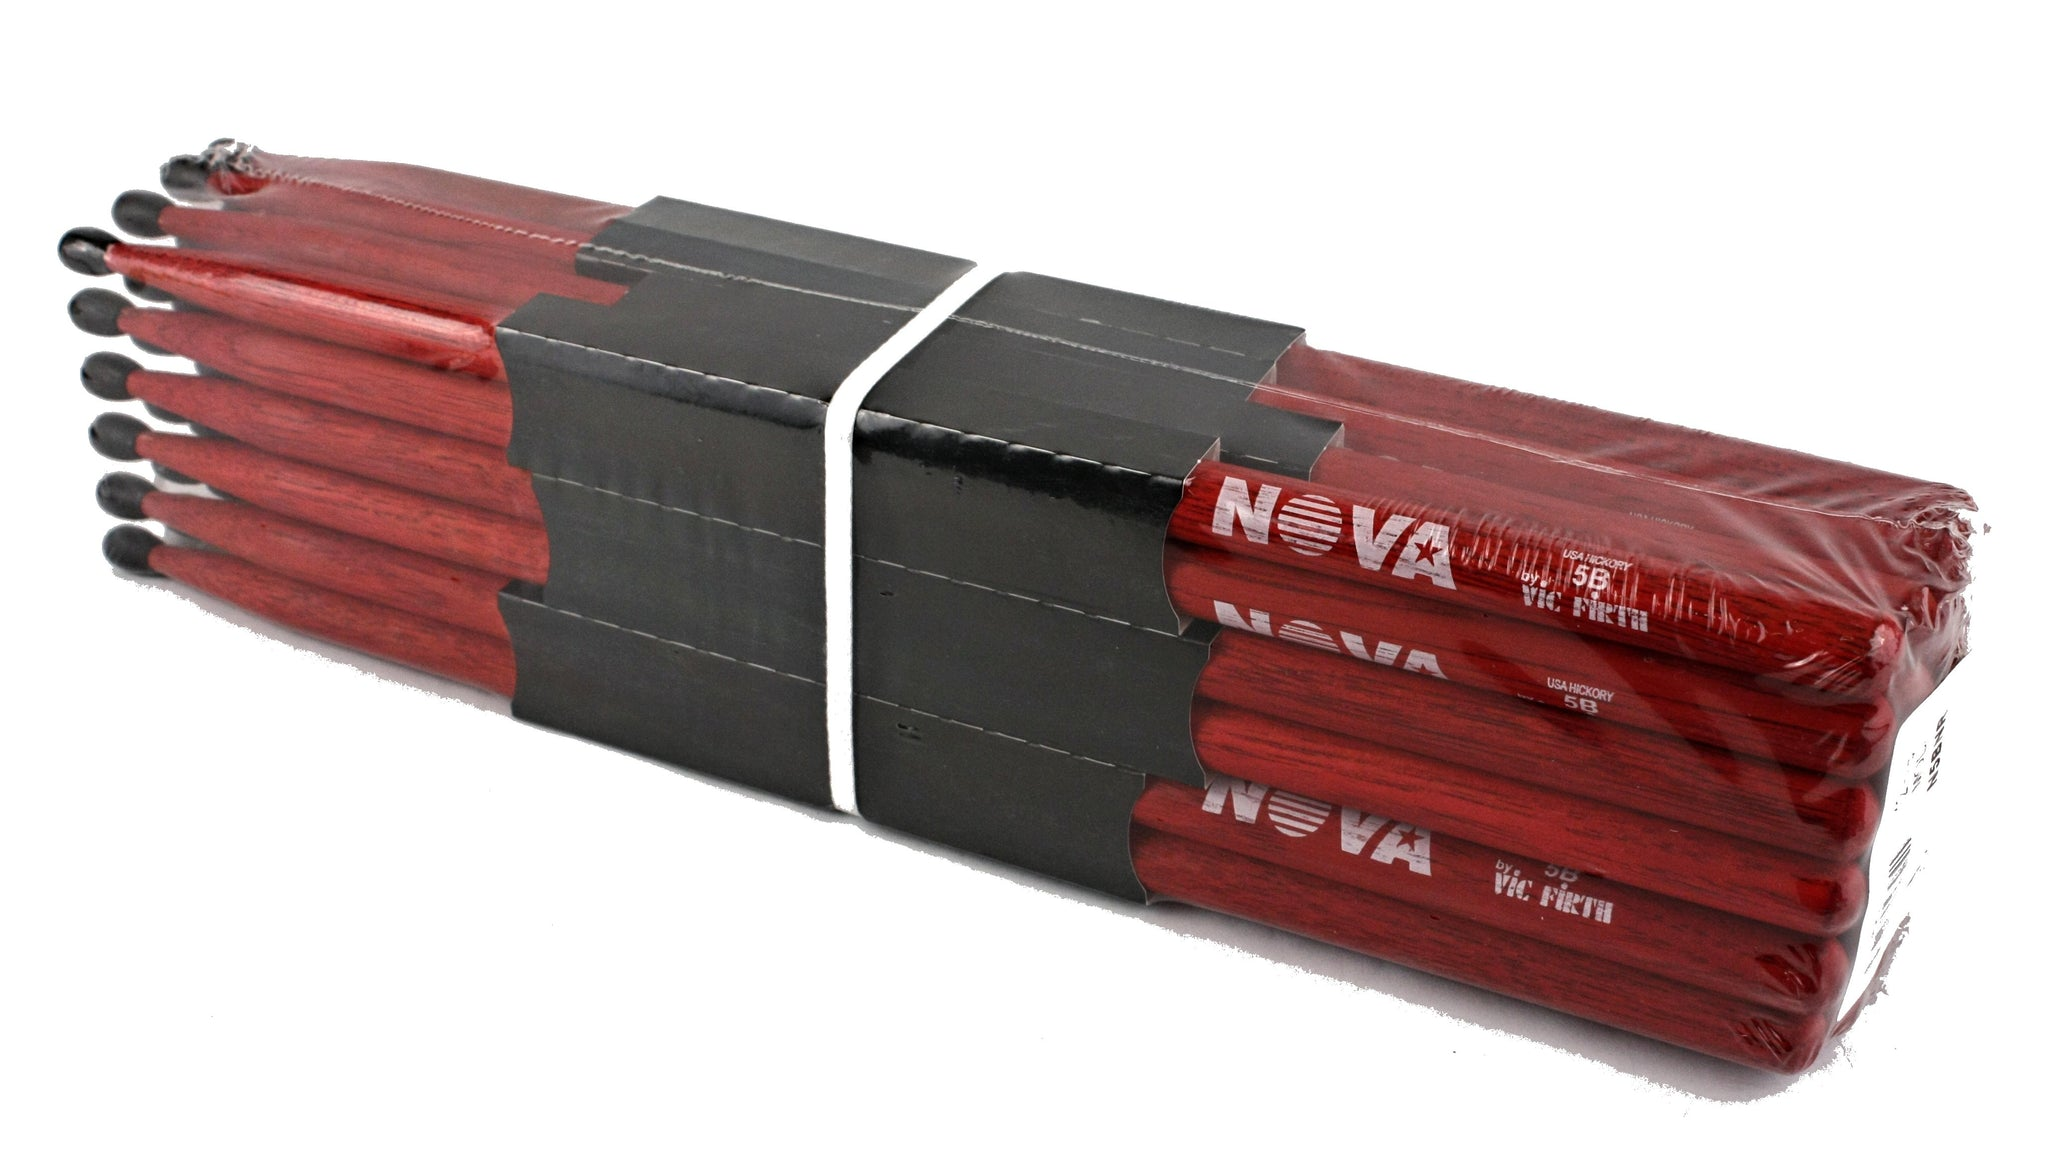 (12-Pairs) Vic Firth® NOVA® 5B Hickory Drumsticks, Red Sticks, Black Nylon Tip. #N5BNR